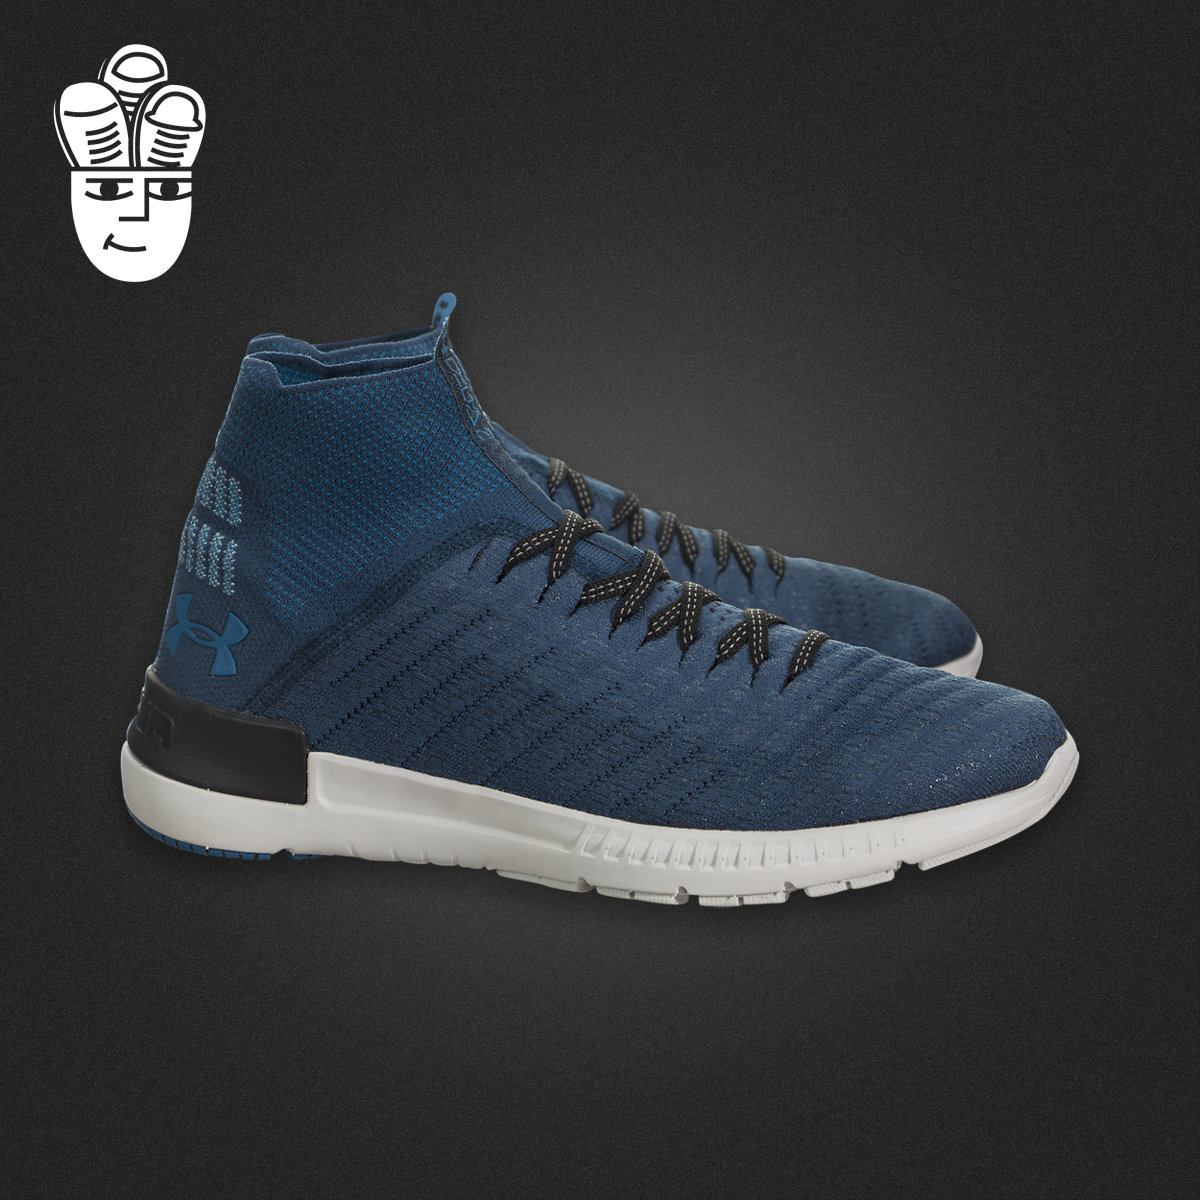 timeless design 00eee d4b88 Under Armour Delta 2 Under Armour UA men breathable mesh running shoes  sports casual shoes